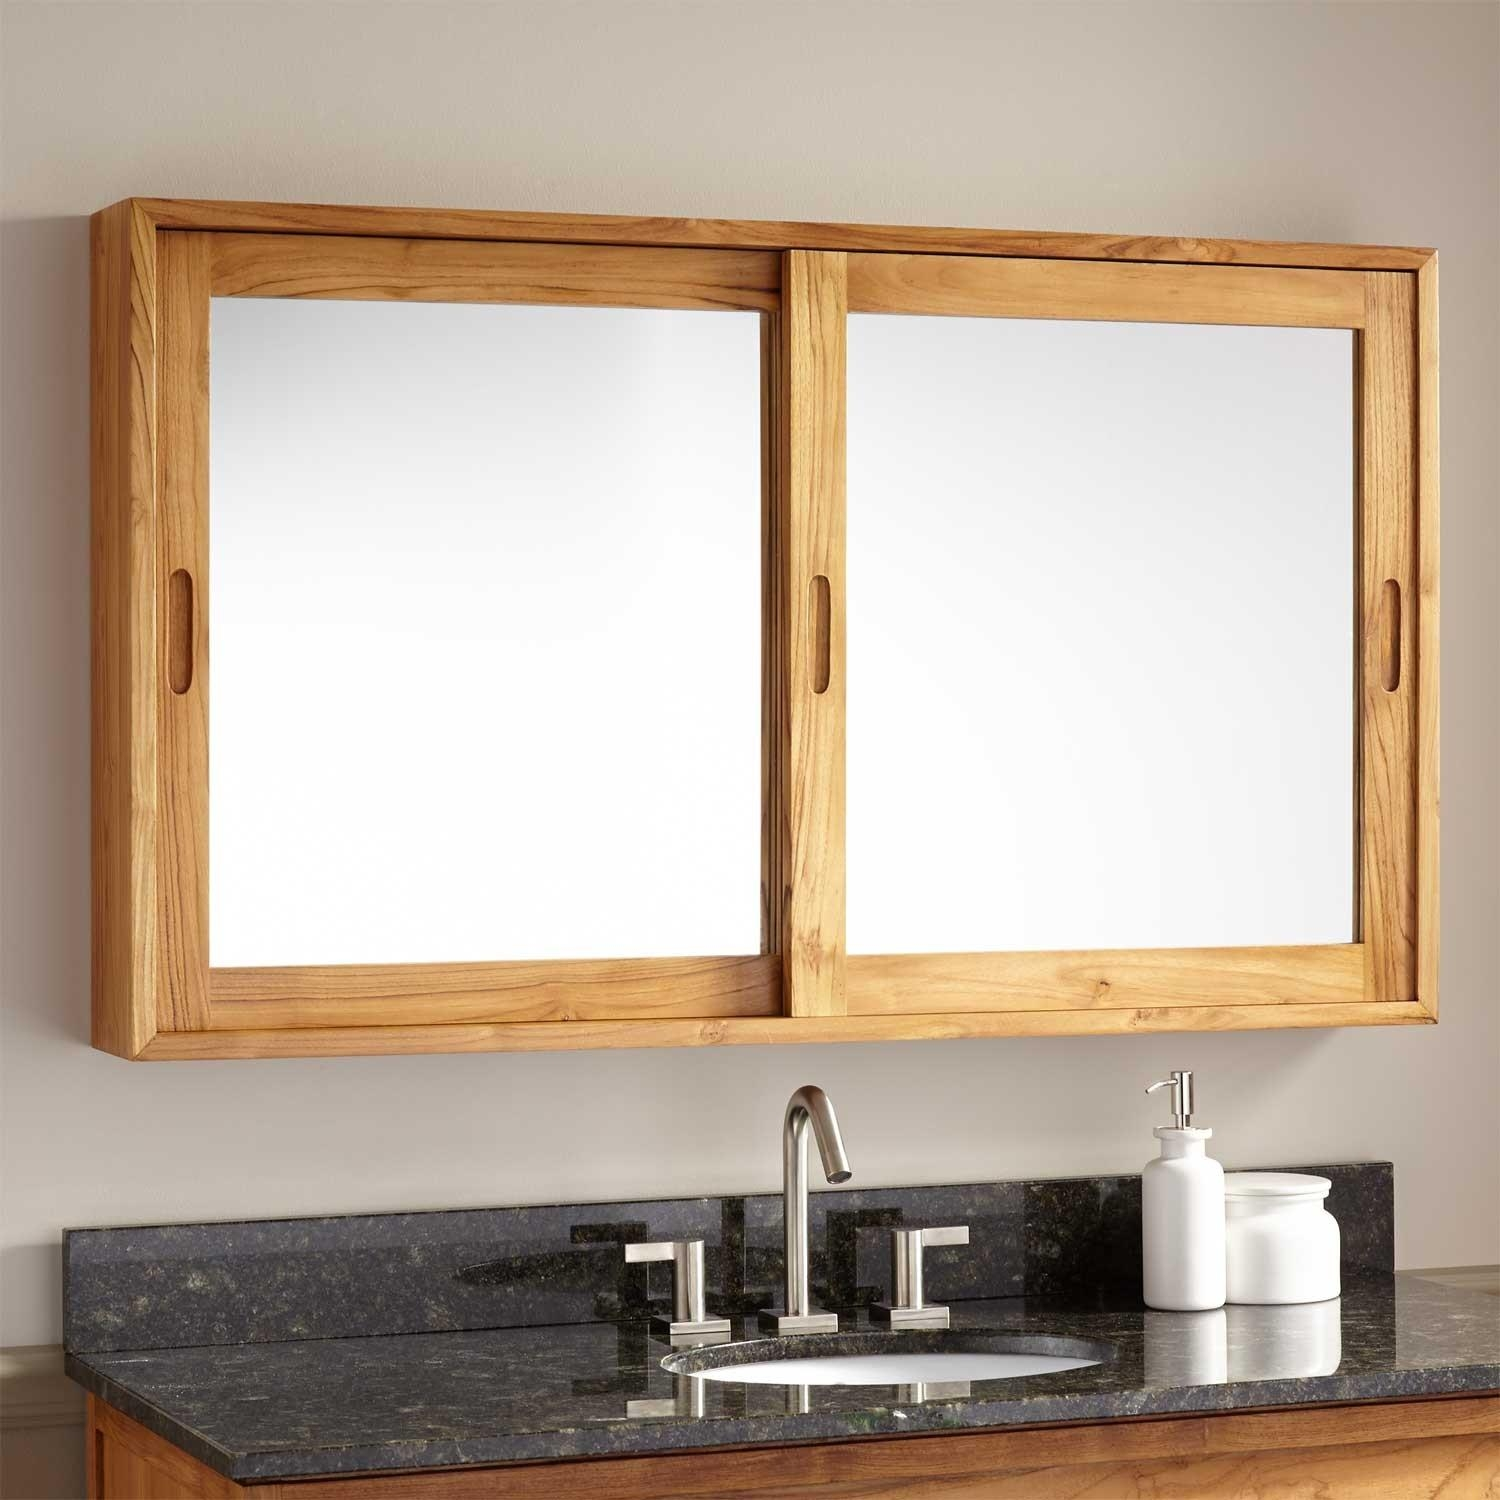 Elegant Medicine Cabinets Surface Mount With Mirrors 14 For Your Within Rona Mirrors (Image 9 of 20)